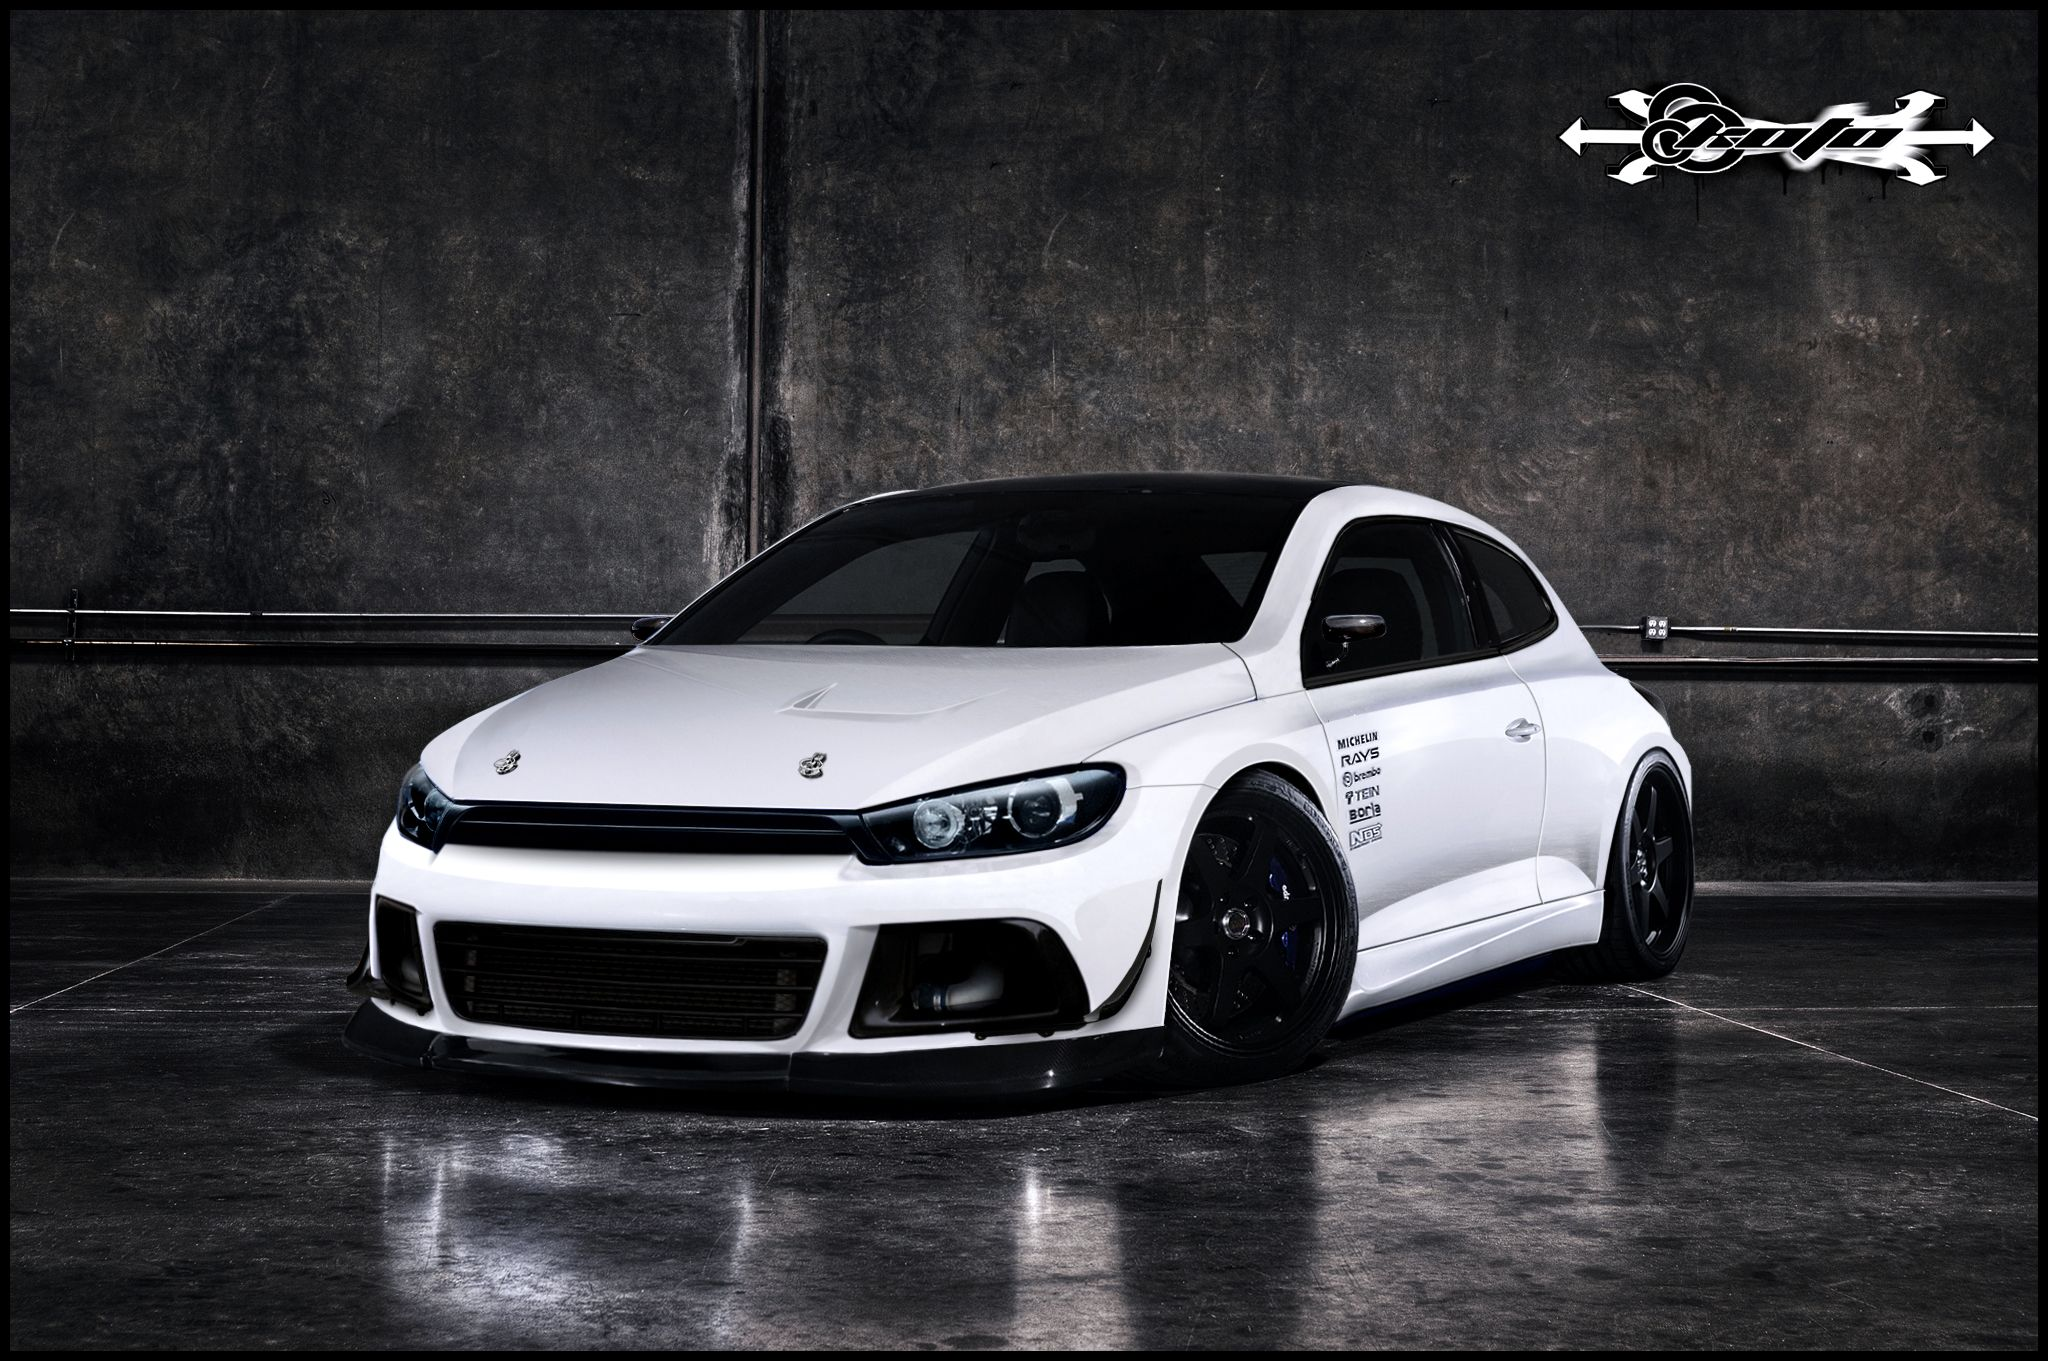 vw scirocco r by koto pinterest vw scirocco vw and. Black Bedroom Furniture Sets. Home Design Ideas